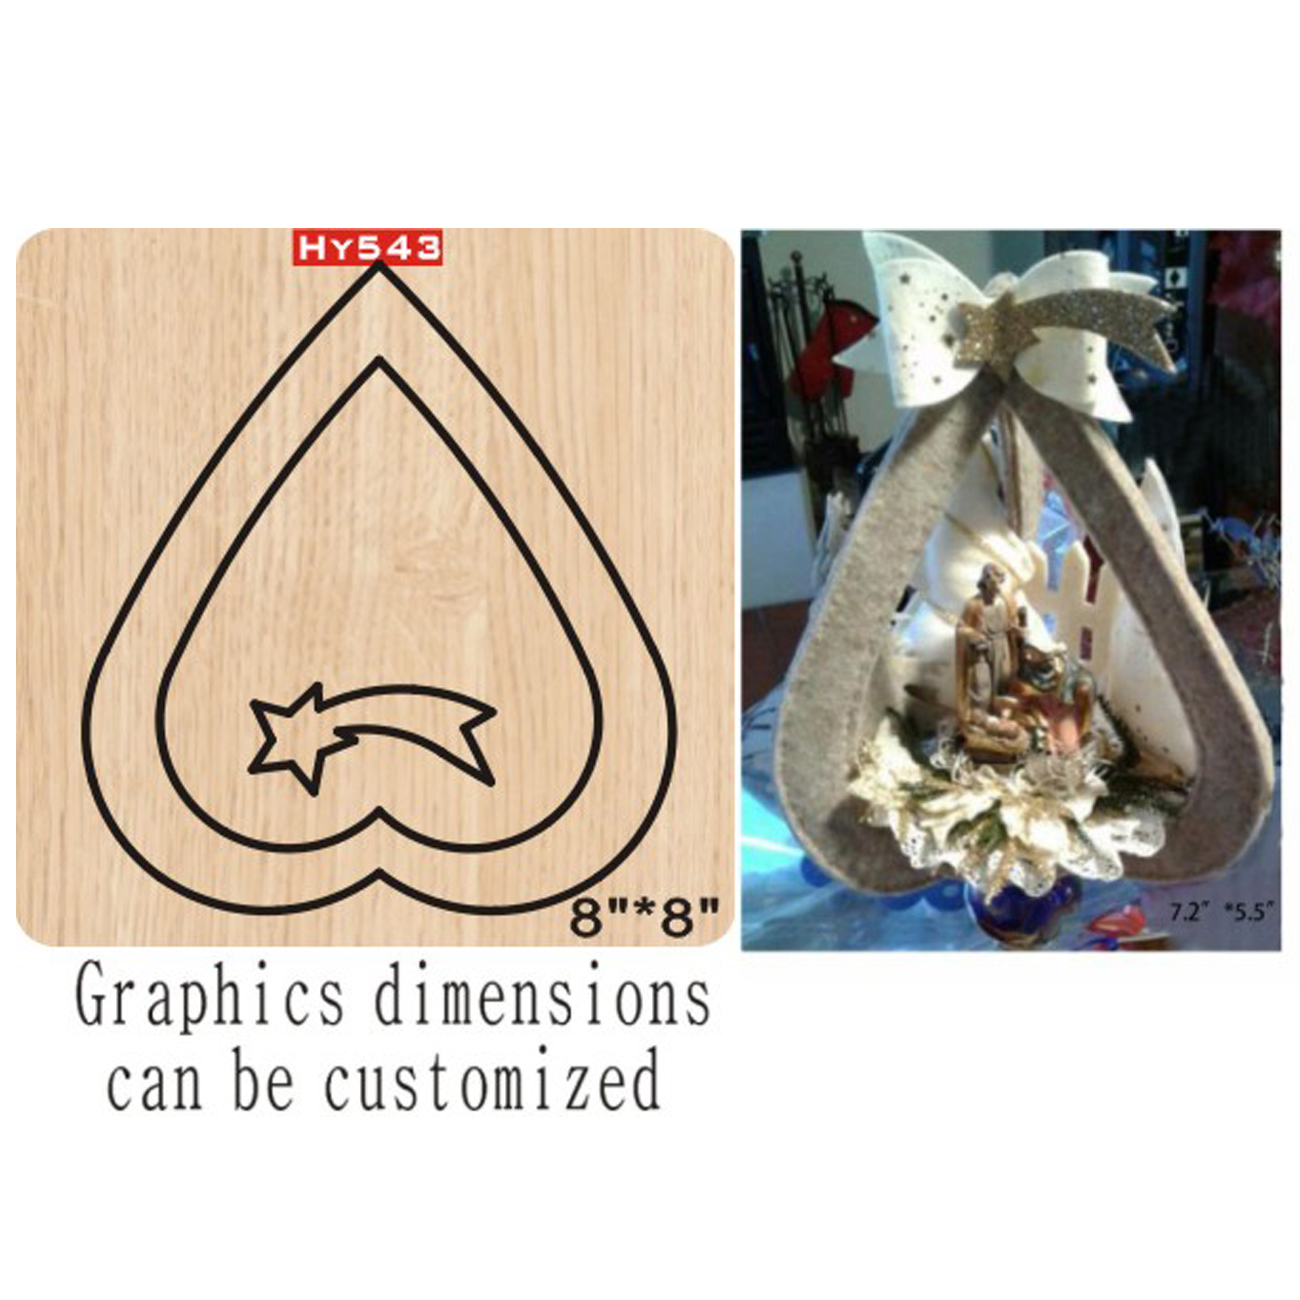 Heart-shaped Cutting Dies 2019 Die Cut &wooden Dies Suitable  For Common Die Cutting  Machines On The Market